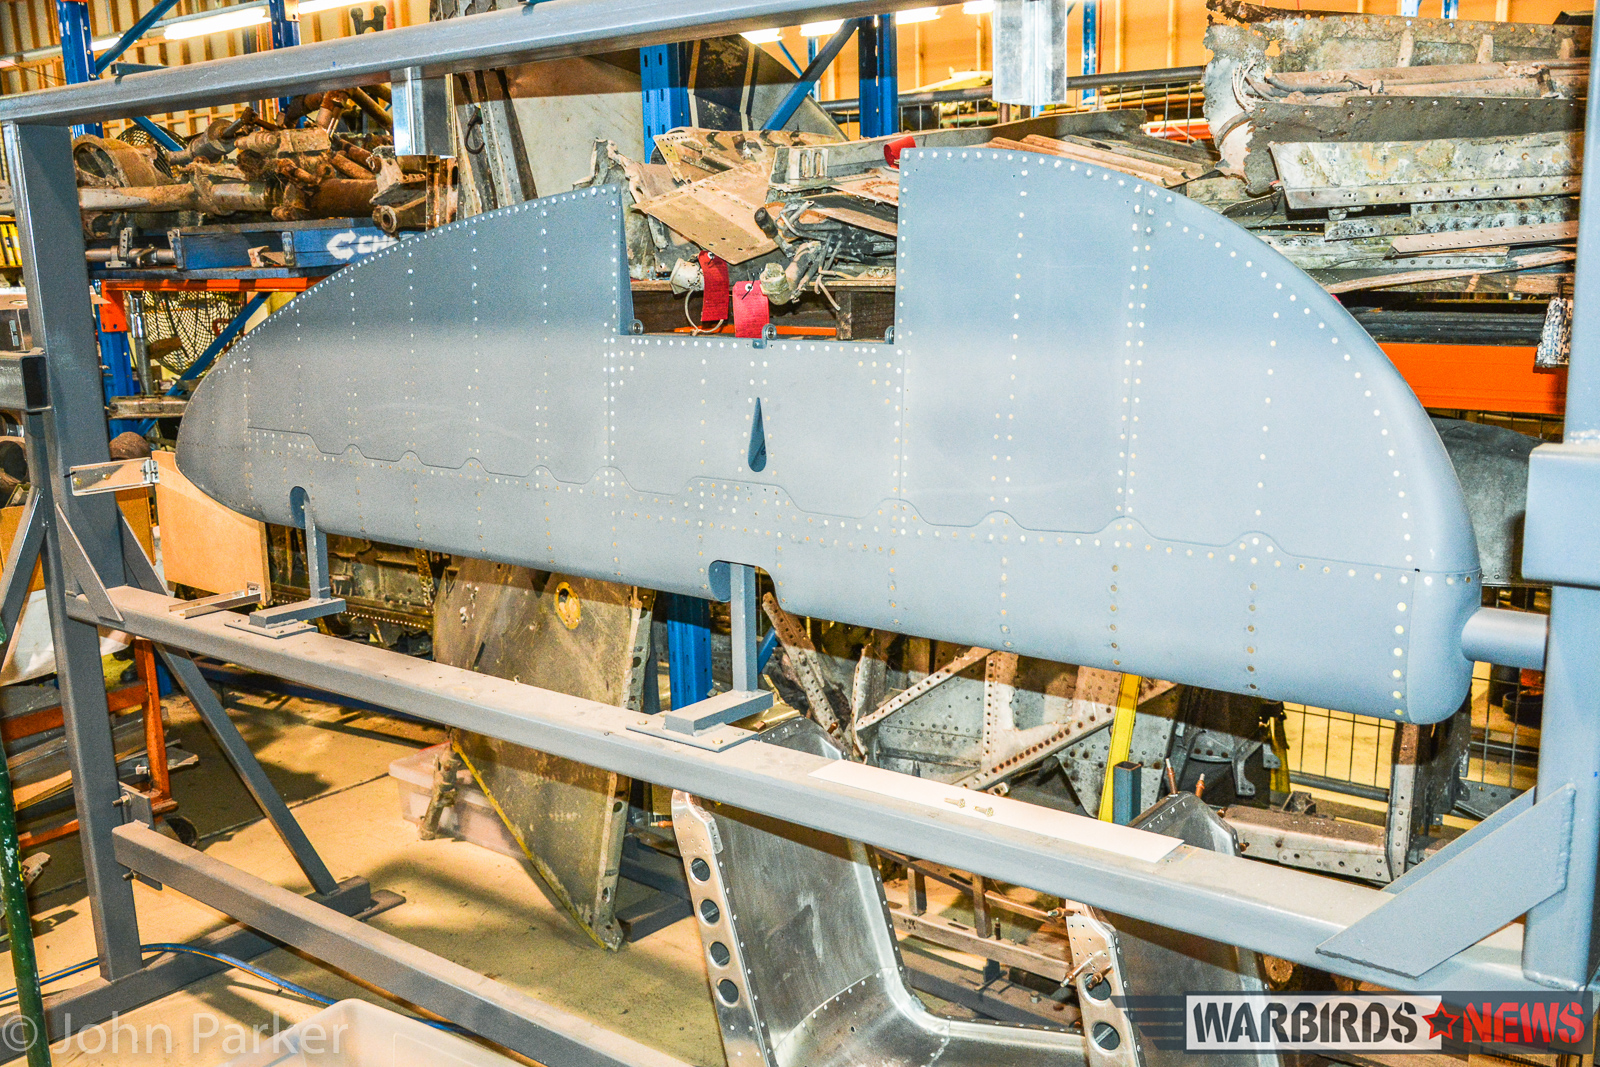 A Lightning rudder nearing completion in its jig. (photo by John Parker)